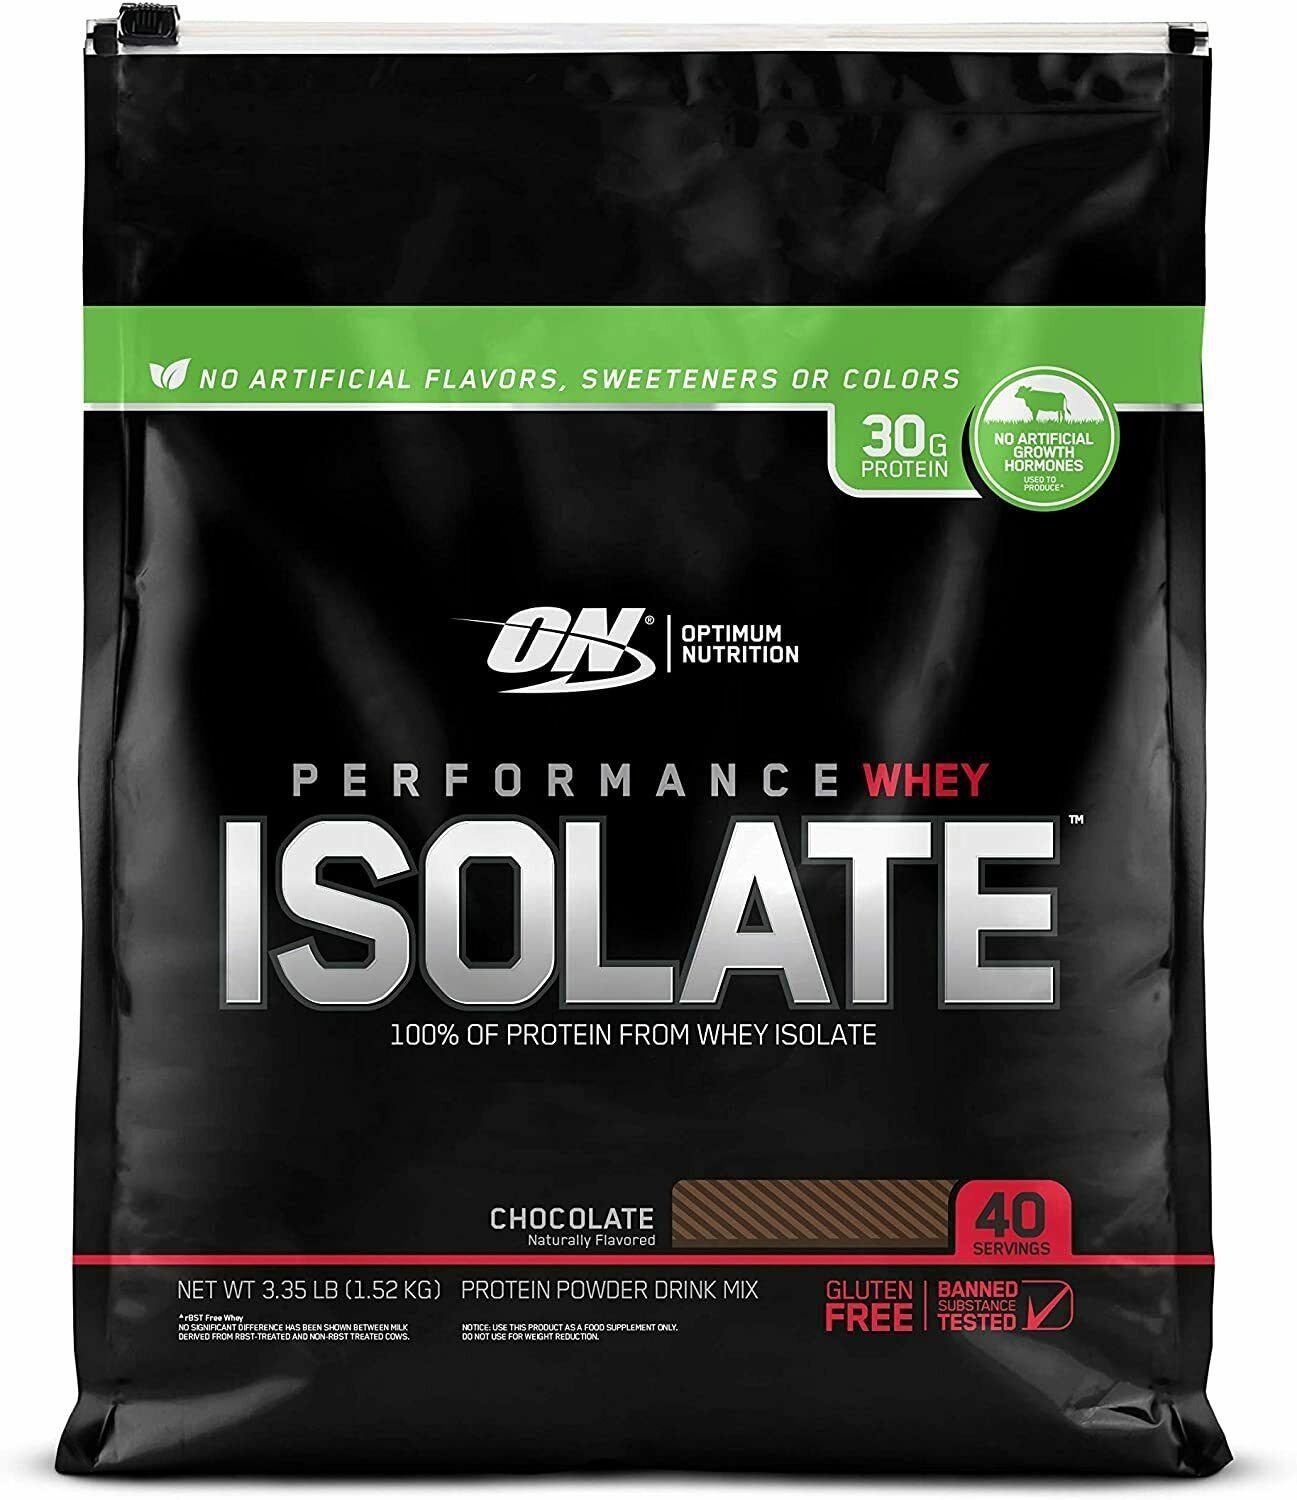 Optimum Nutrition Performance Whey Isolate Protein Chocolate